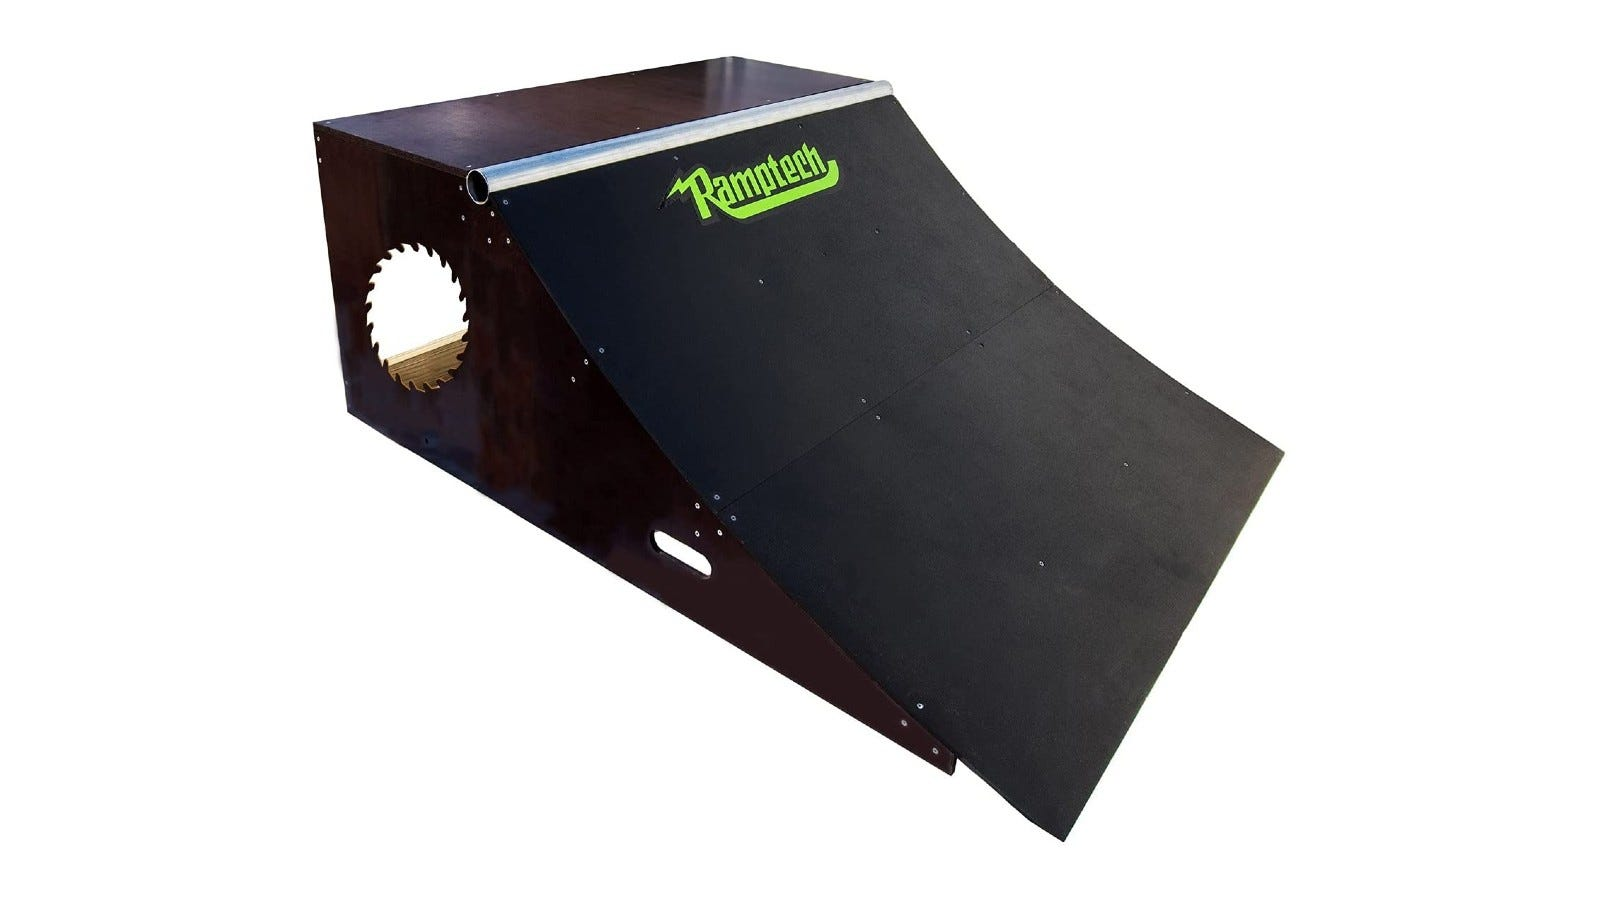 A quarterpipe for improving your transition skills